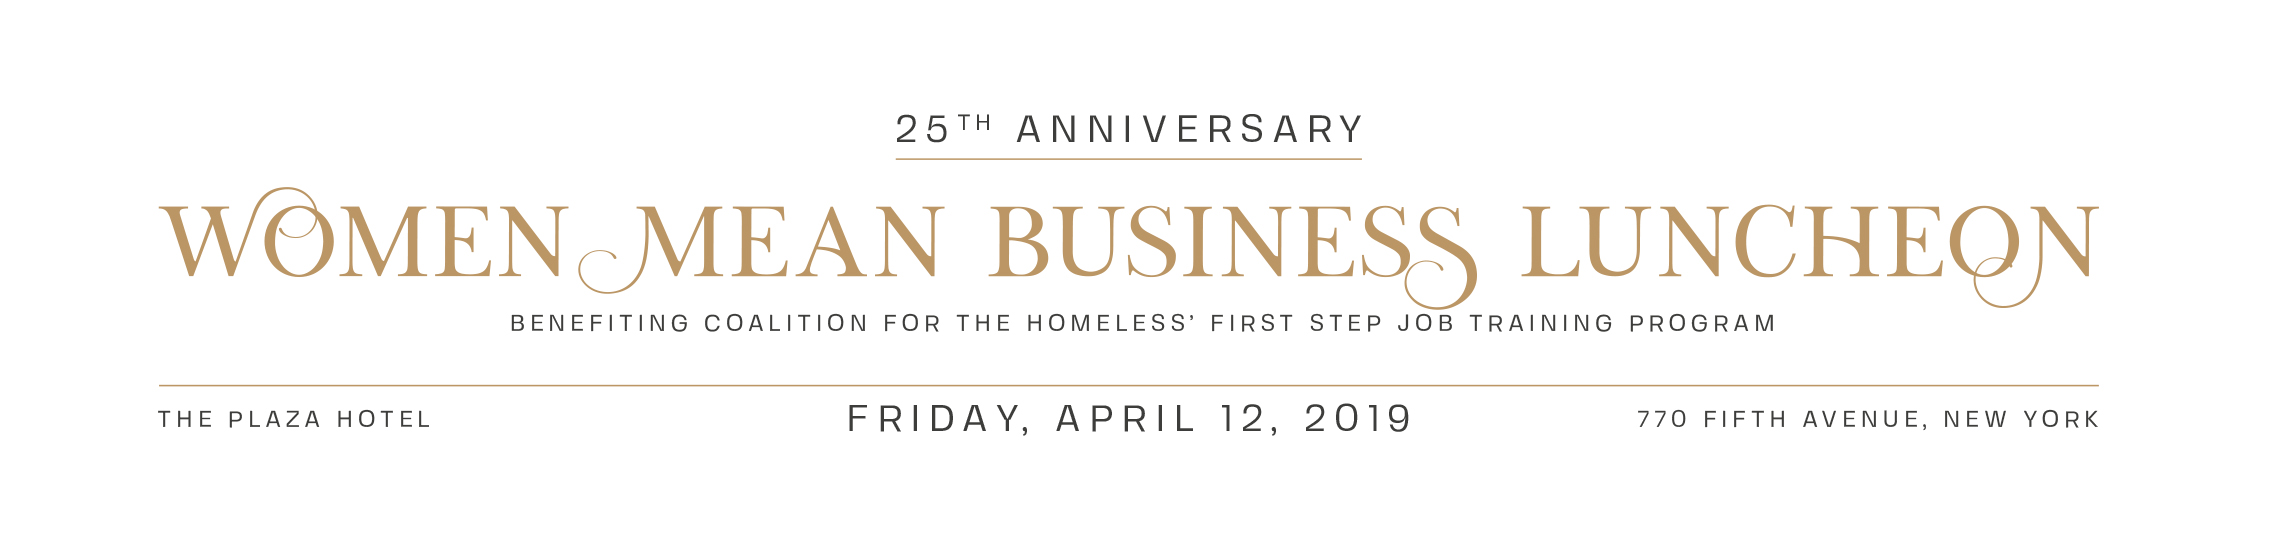 Women Mean Business Luncheon 2019